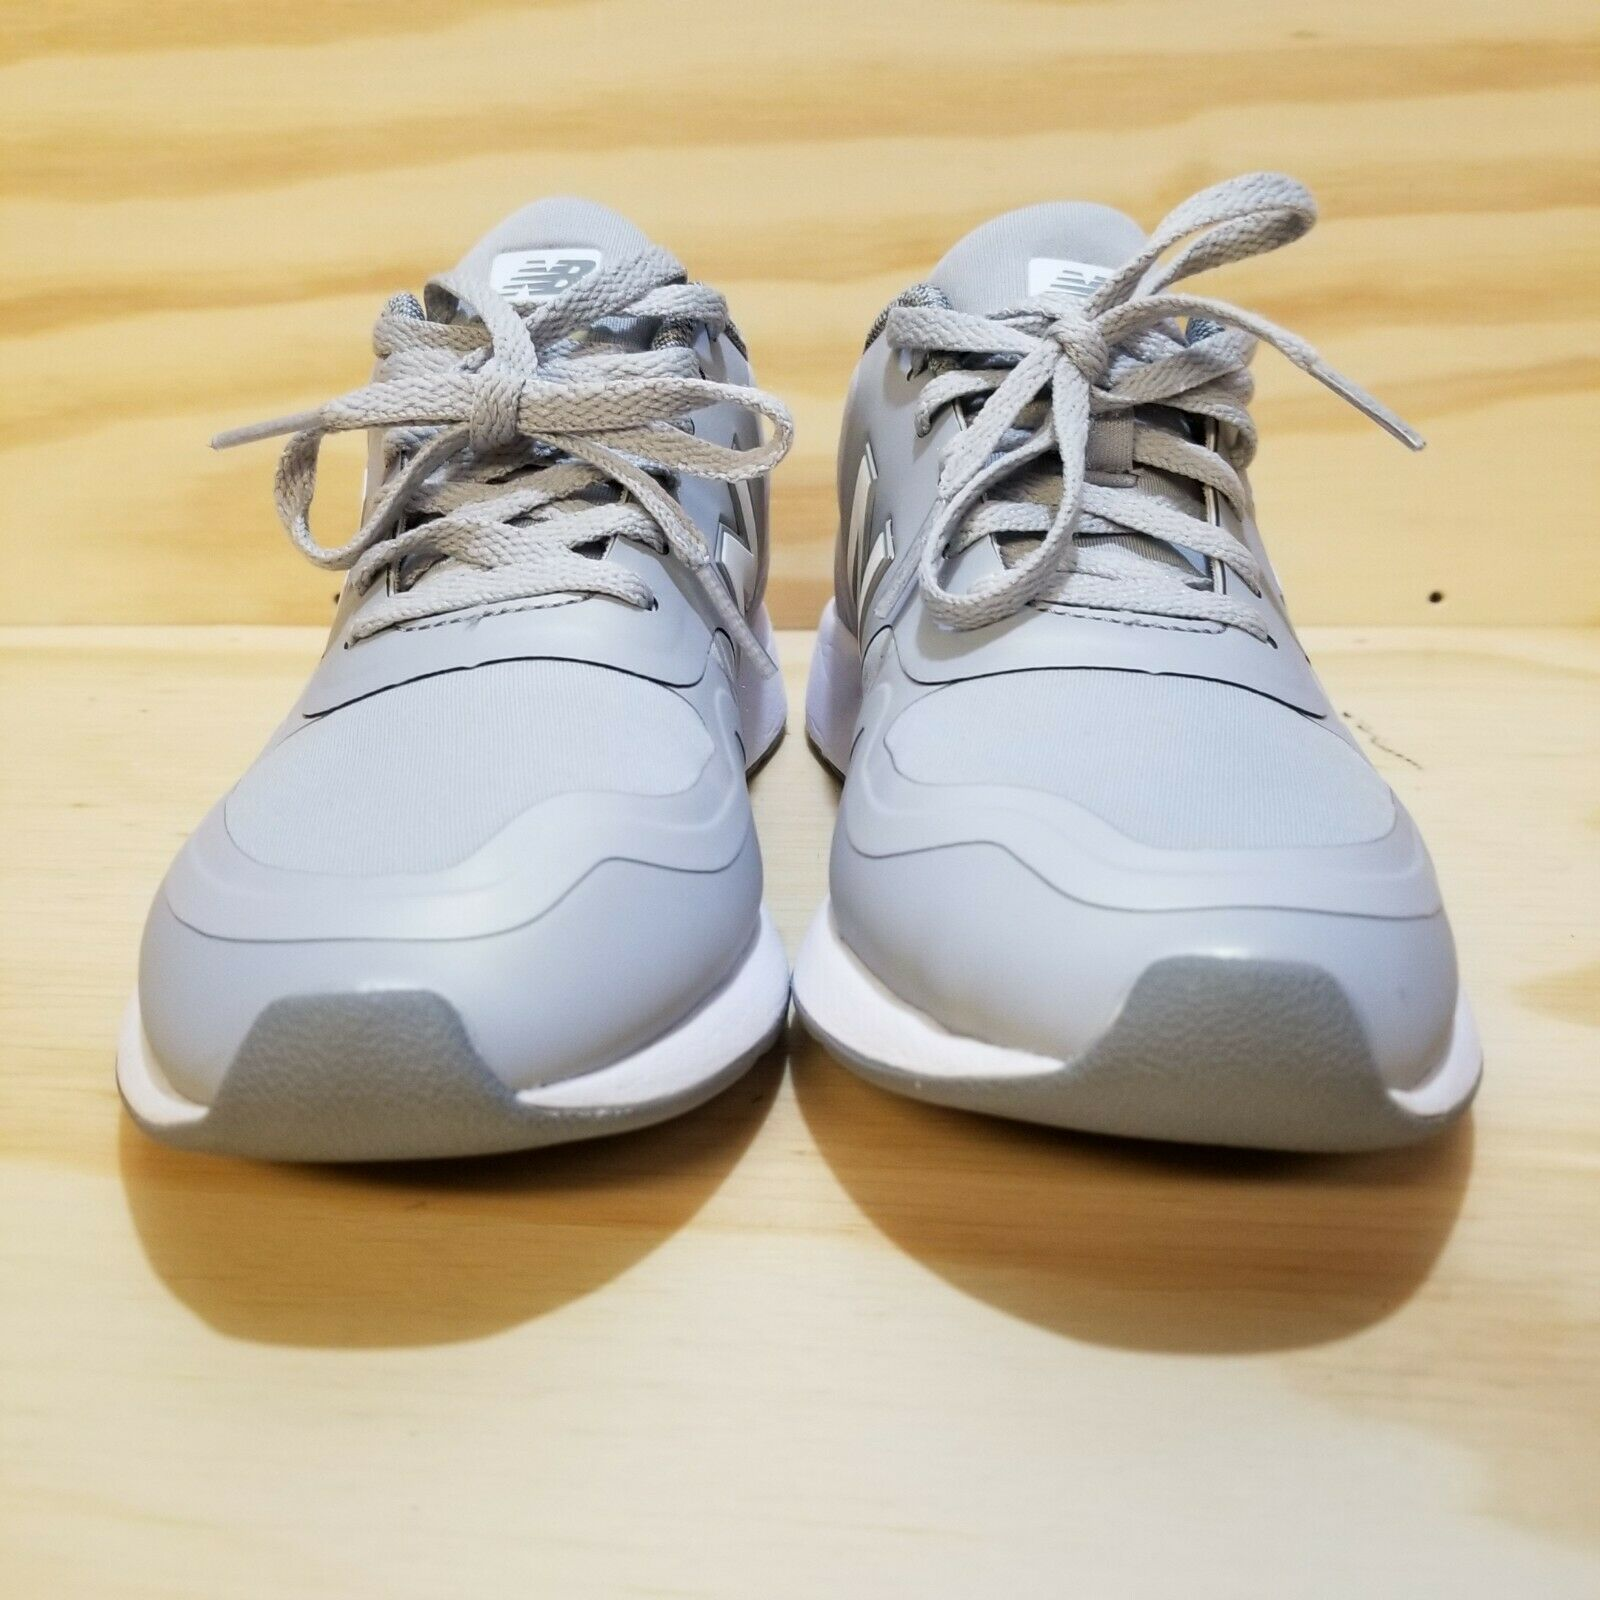 New Balance Womens WRL420 Sneakers Grey Shoe Size 8 White Laces